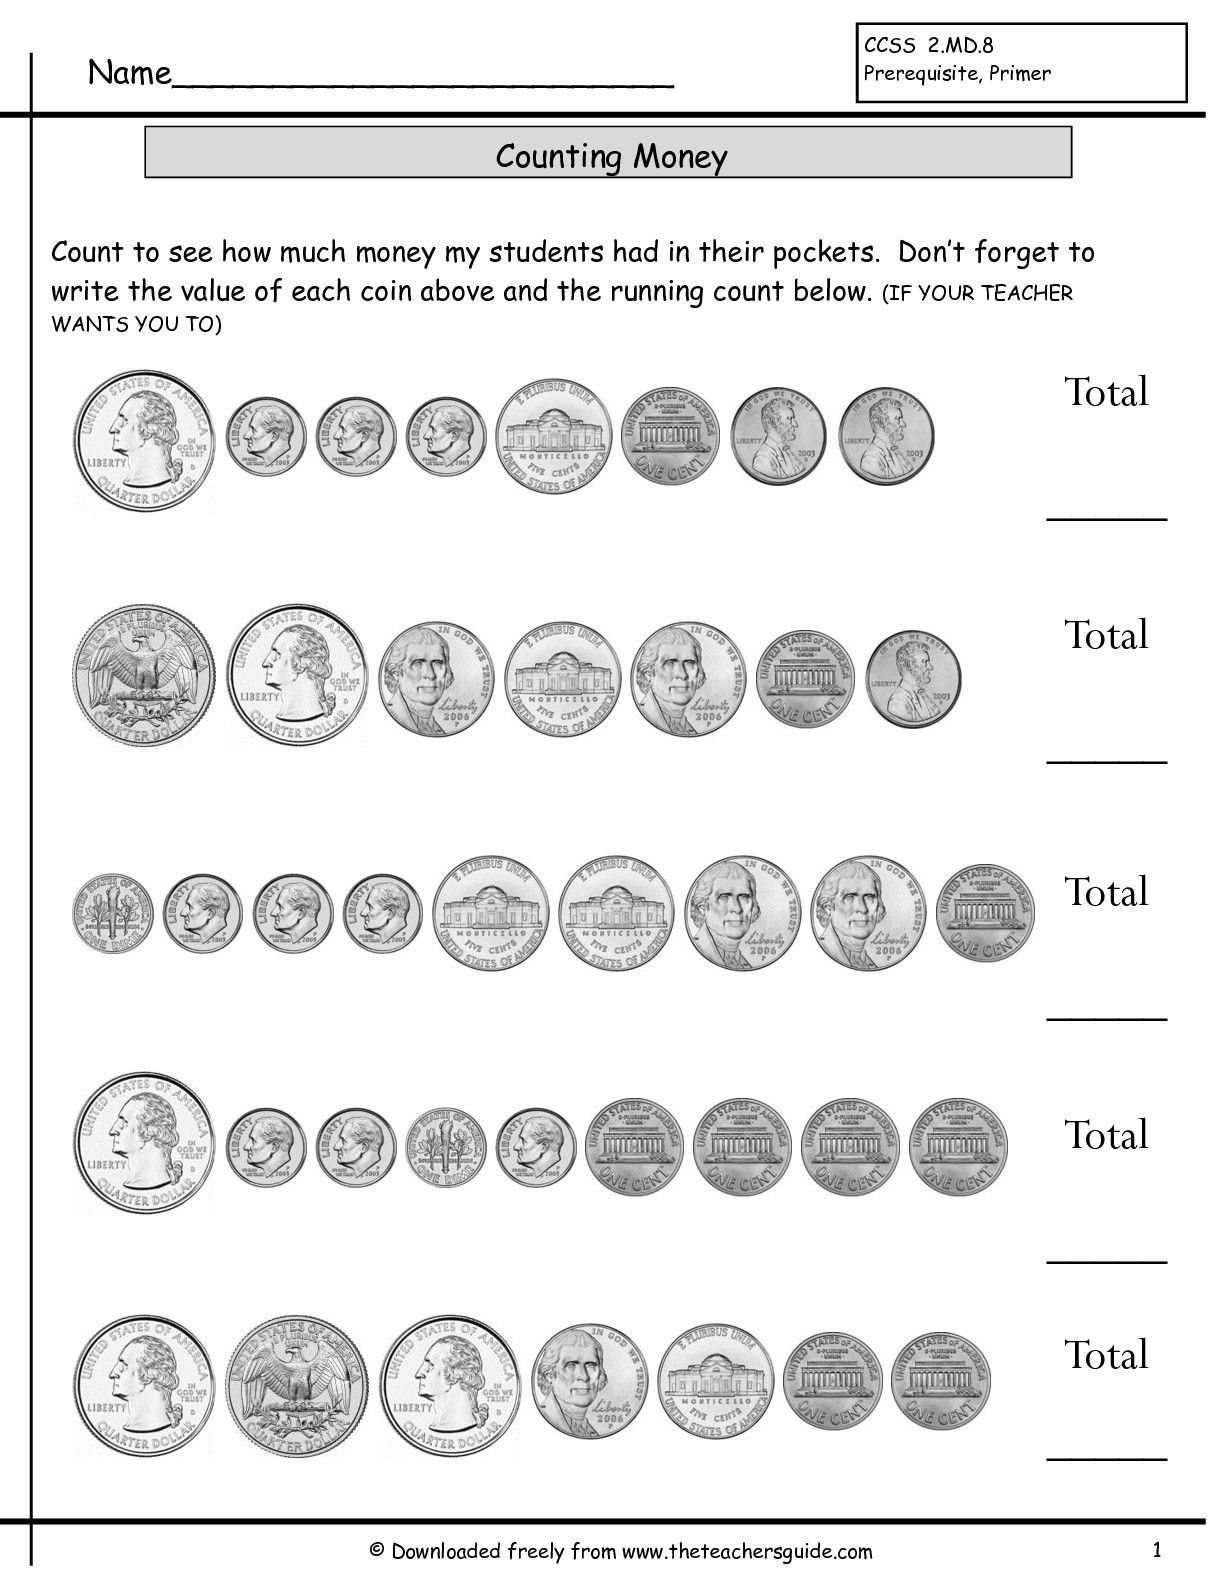 worksheet Coin Identification Worksheets count coins worksheet counting worksheets with quarters 2 coin identification and values printouts adding subtracting money amounts